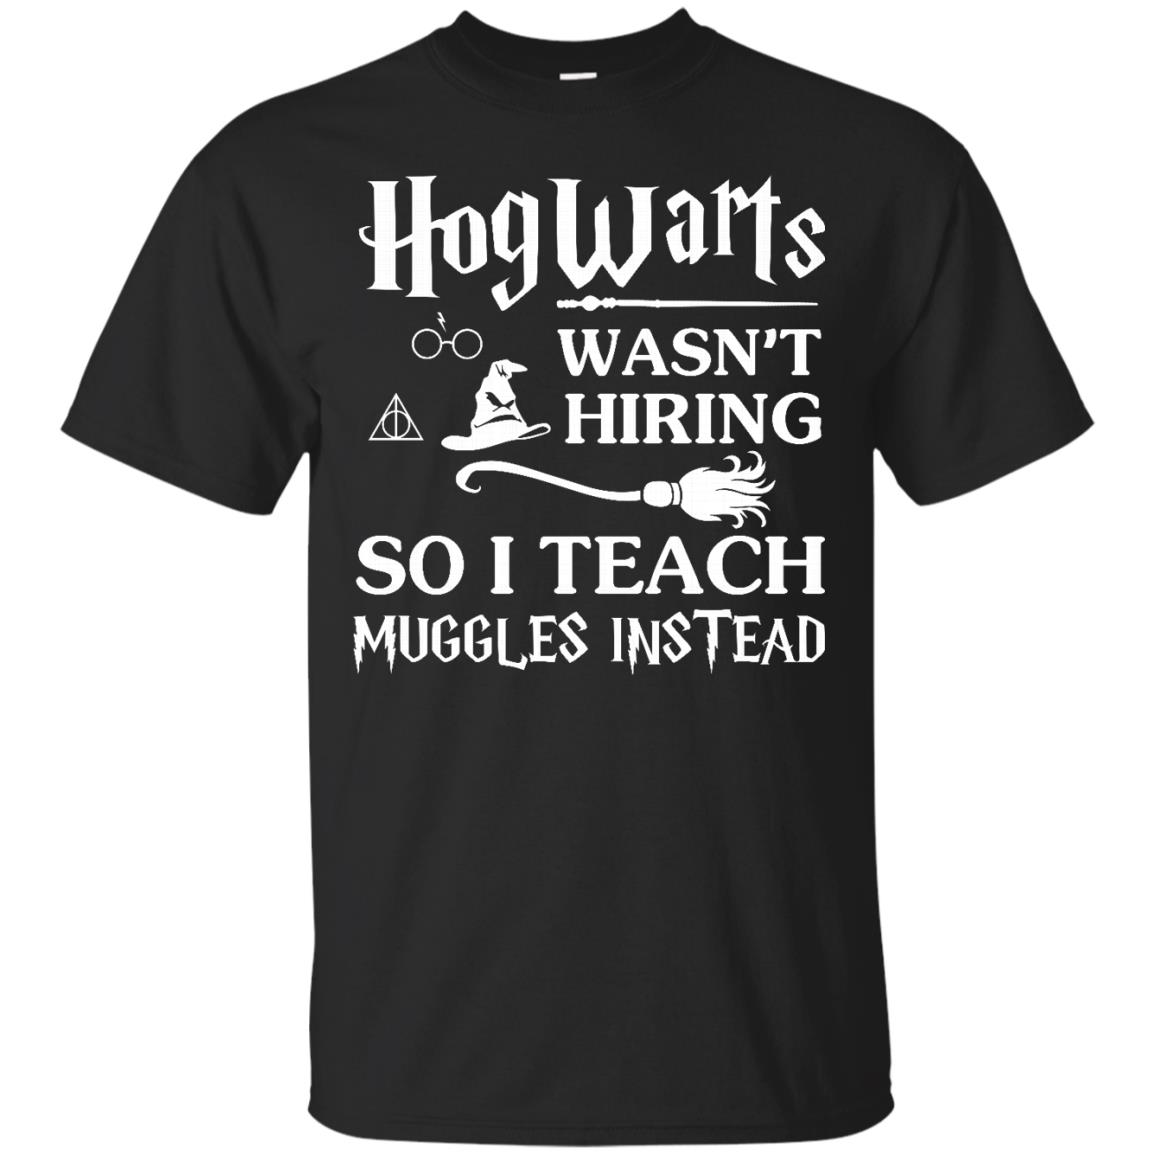 image 270px Hogwarts Wasn't Hiring So I Teach Muggles Instead T Shirts, Hoodies, Tank Top